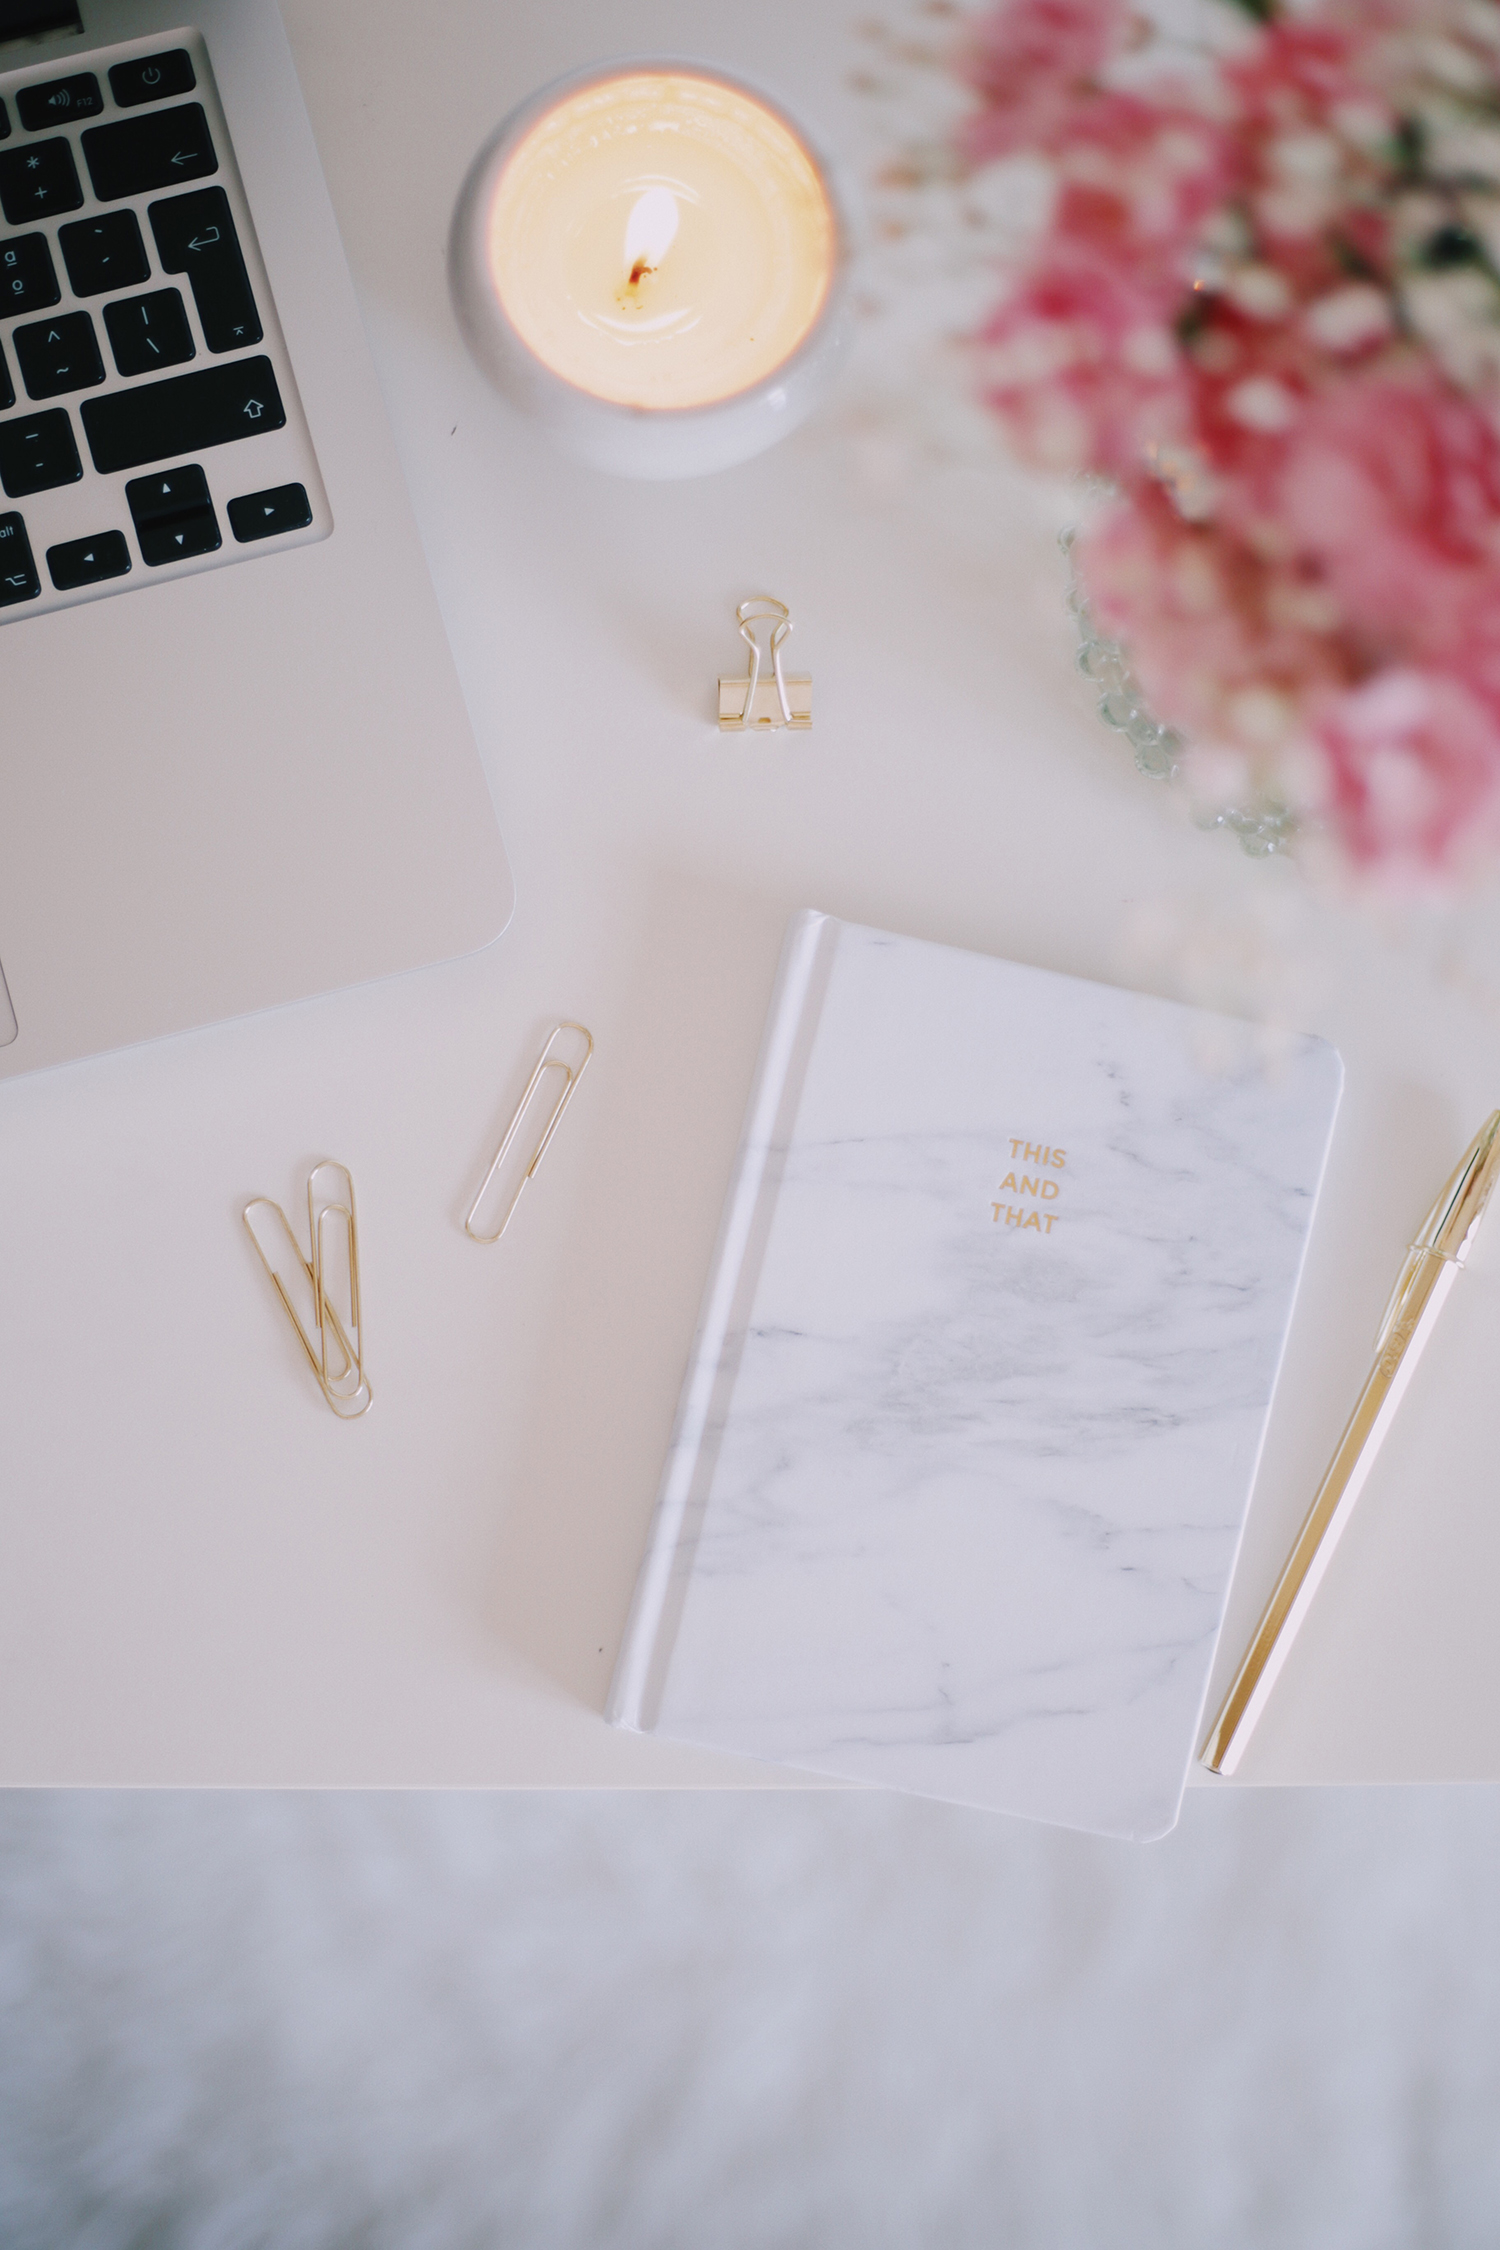 How To Balance Blogging With A Full-Time Job // A few tips on how to blog while working 9-5. Click here to read my six tips!